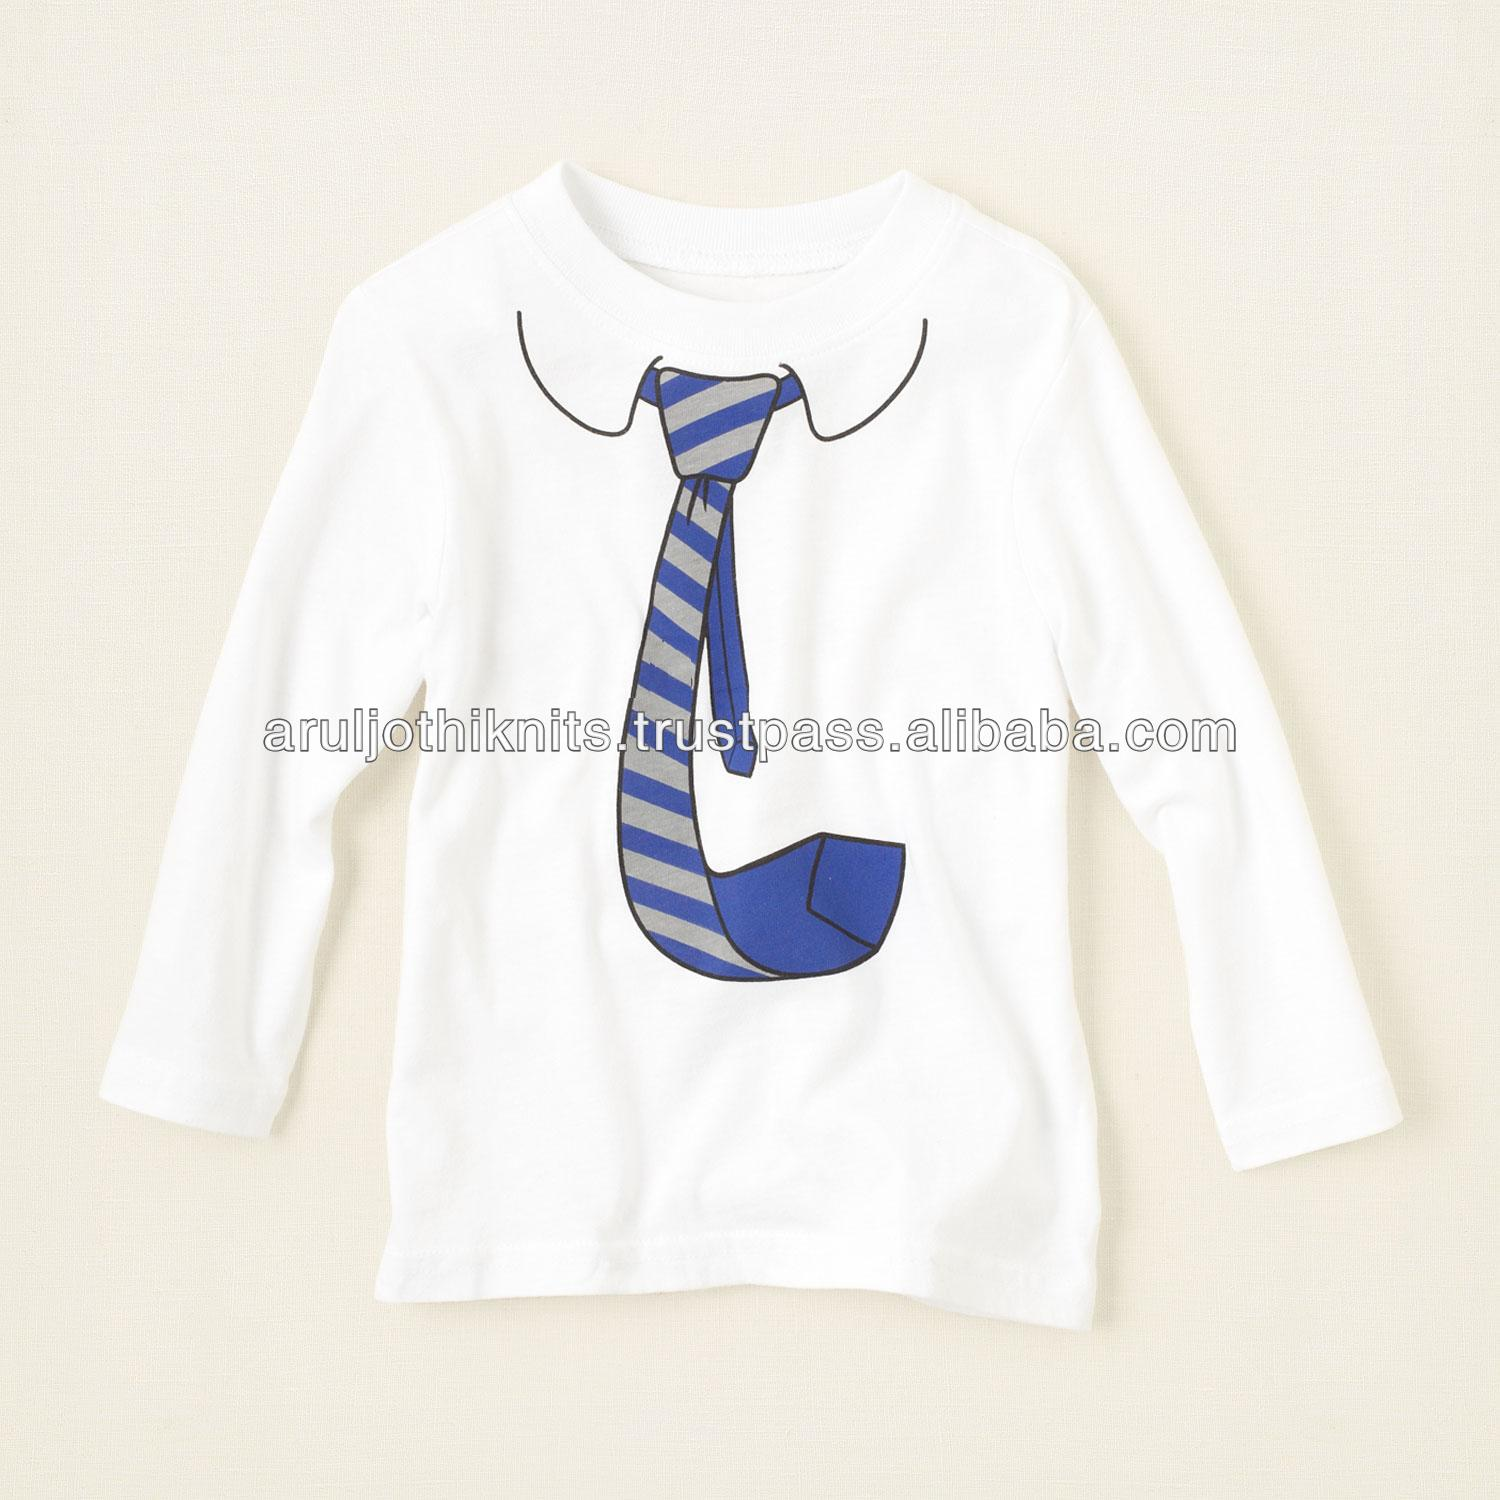 Design t shirt baby - Baby Boys Long Sleeve T Shirt With Tie Print Buy Funny Designs Boys Long Sleeve T Shirts Baby T Shirt Rubber Print T Shirts Product On Alibaba Com